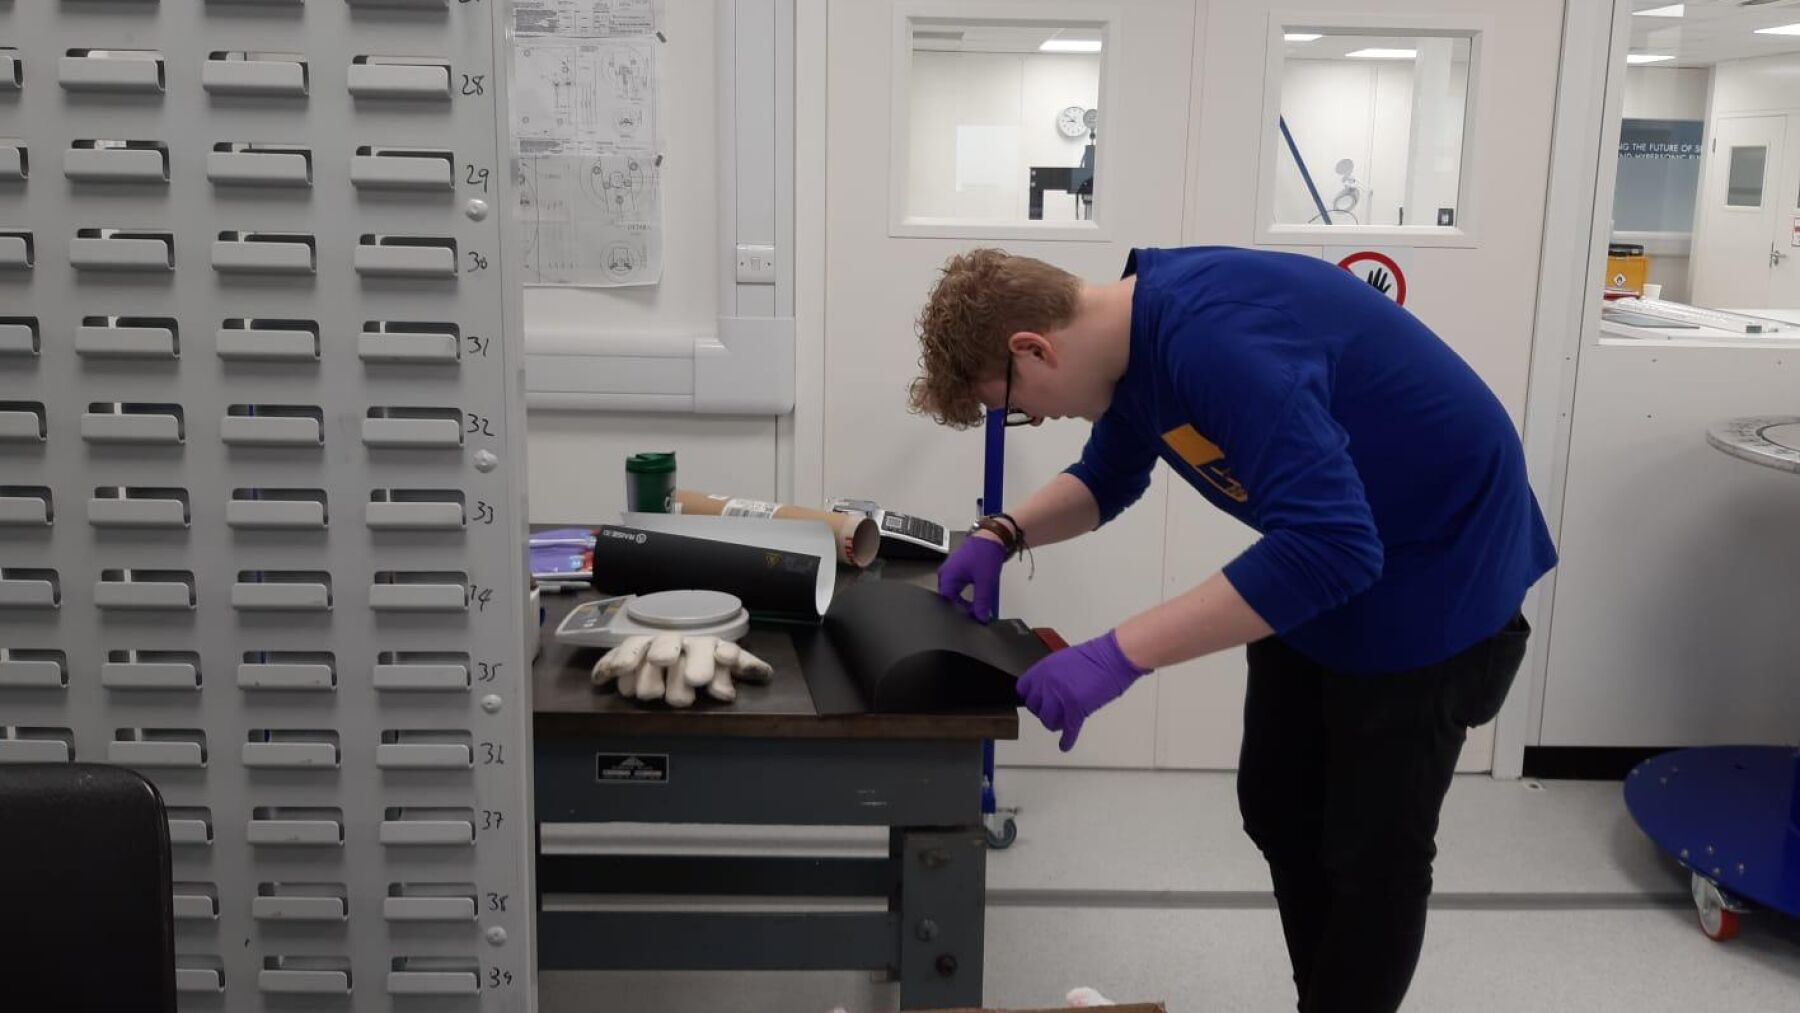 George at work; he has used his specialist knowledge of 3D printing to create PPE for frontline staff